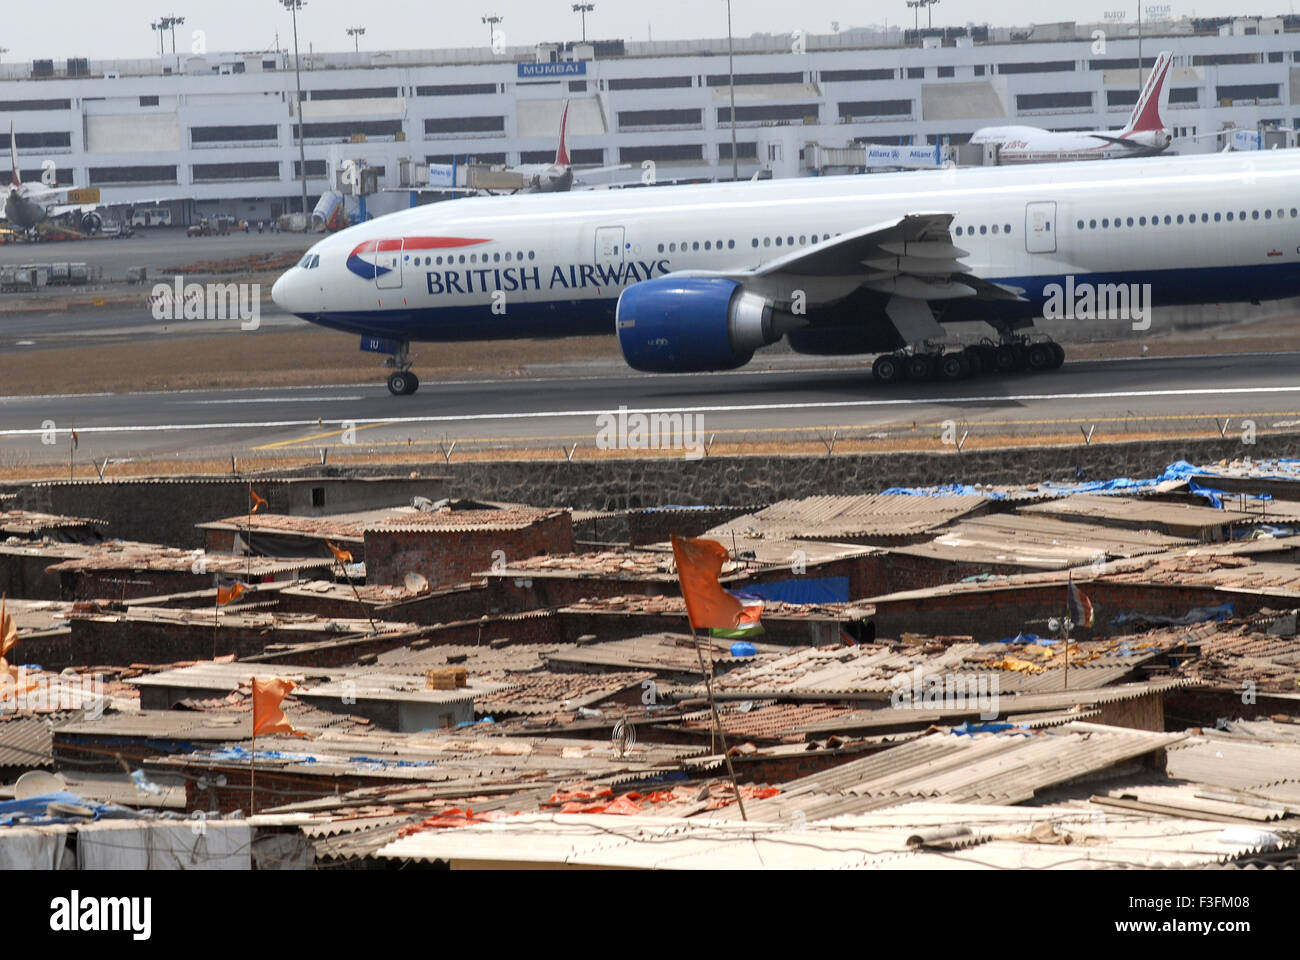 Commercial airliner preparing take off Sahar Airport Chatrapati Shivaji International Airport foreground slums airport - Stock Image